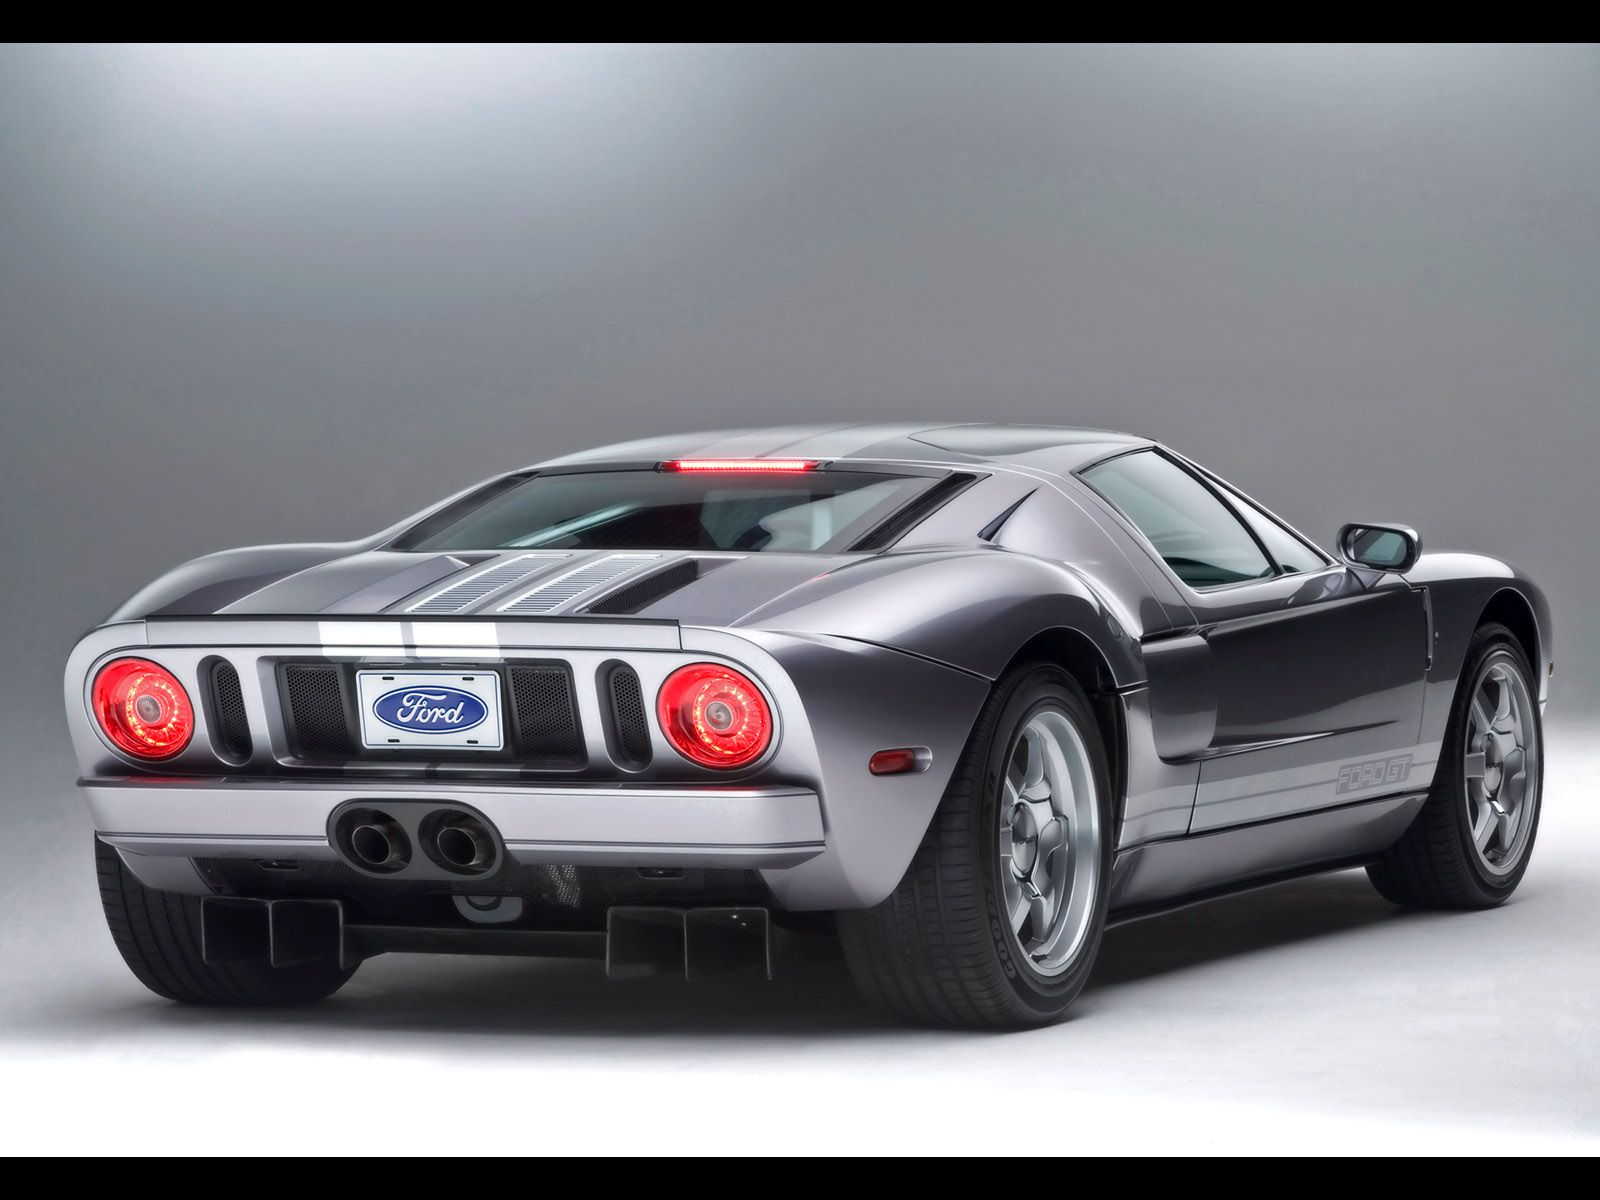 The Ford Gt Ford Gt Sportbilar Ford